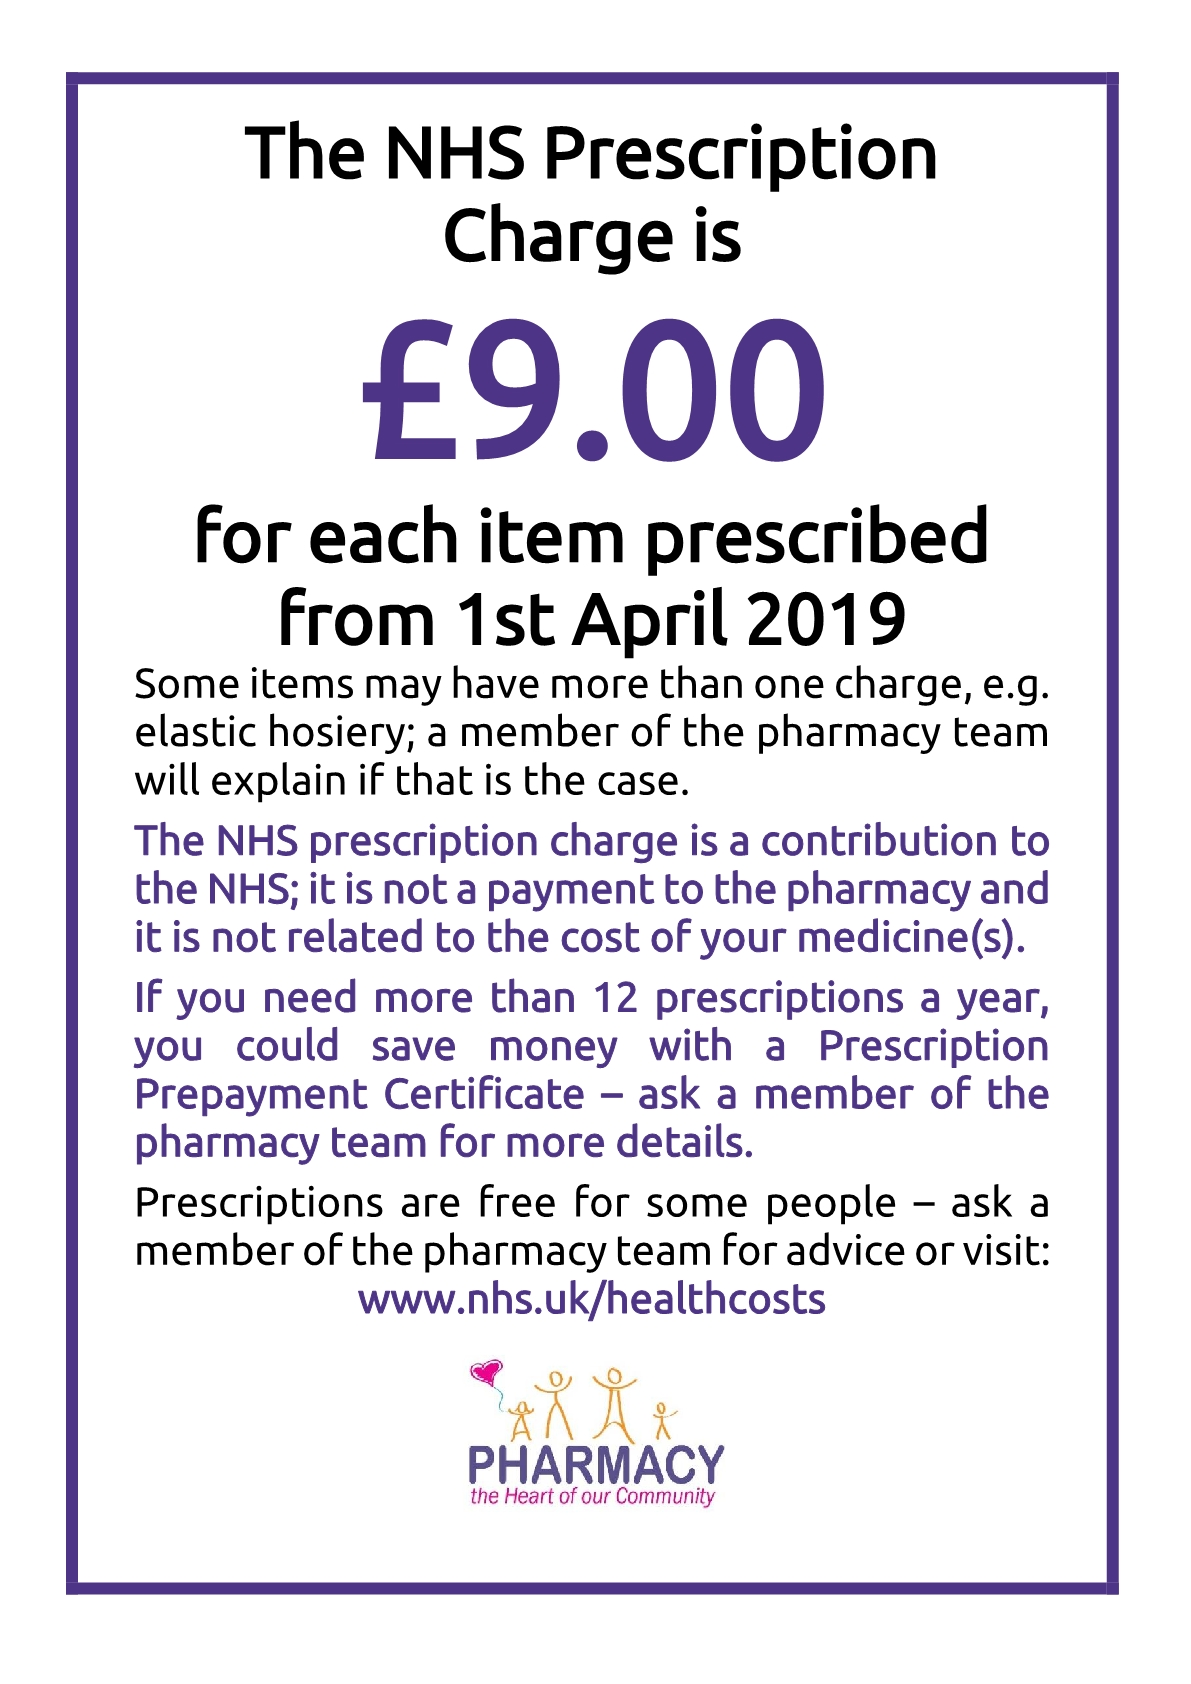 NHS Prescription charges is £9 per item from 1st April 2019